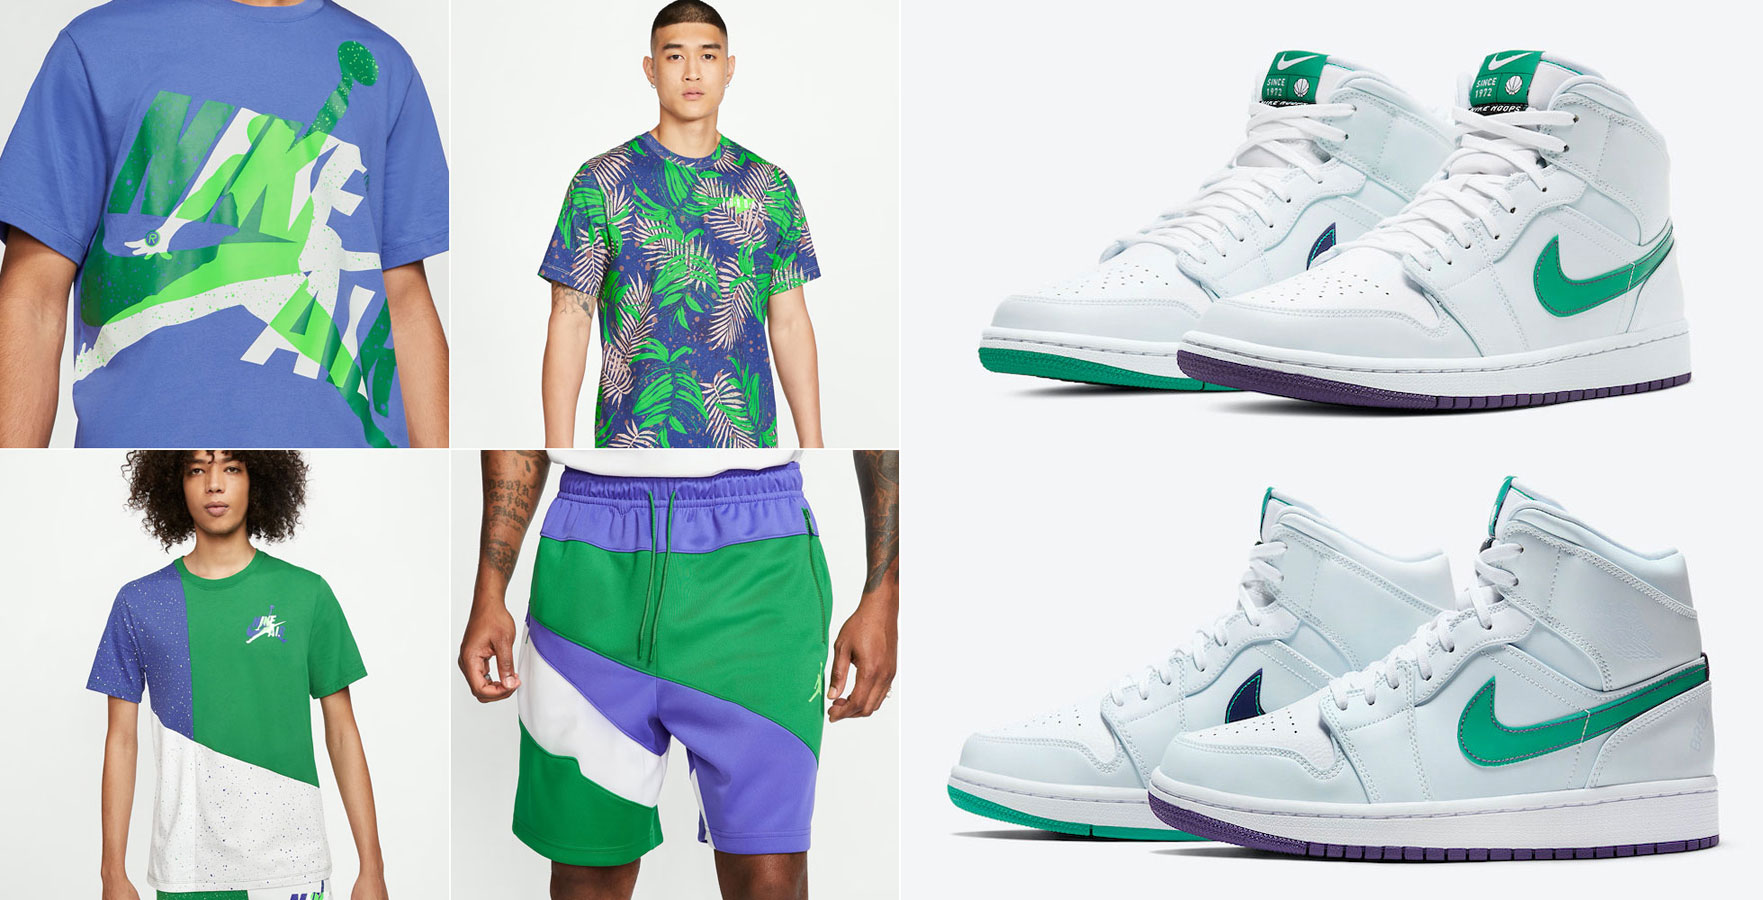 air-jordan-1-mid-nike-hoops-clothing-outfits